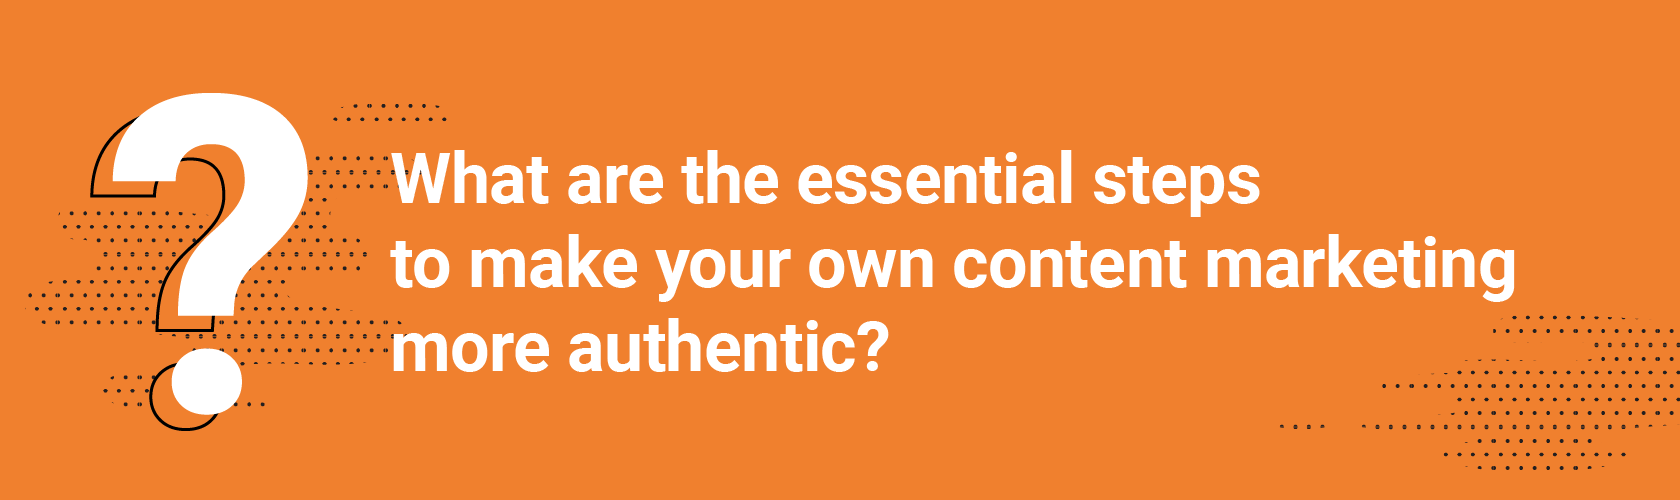 What are the essential steps to make your own content marketing more authentic?